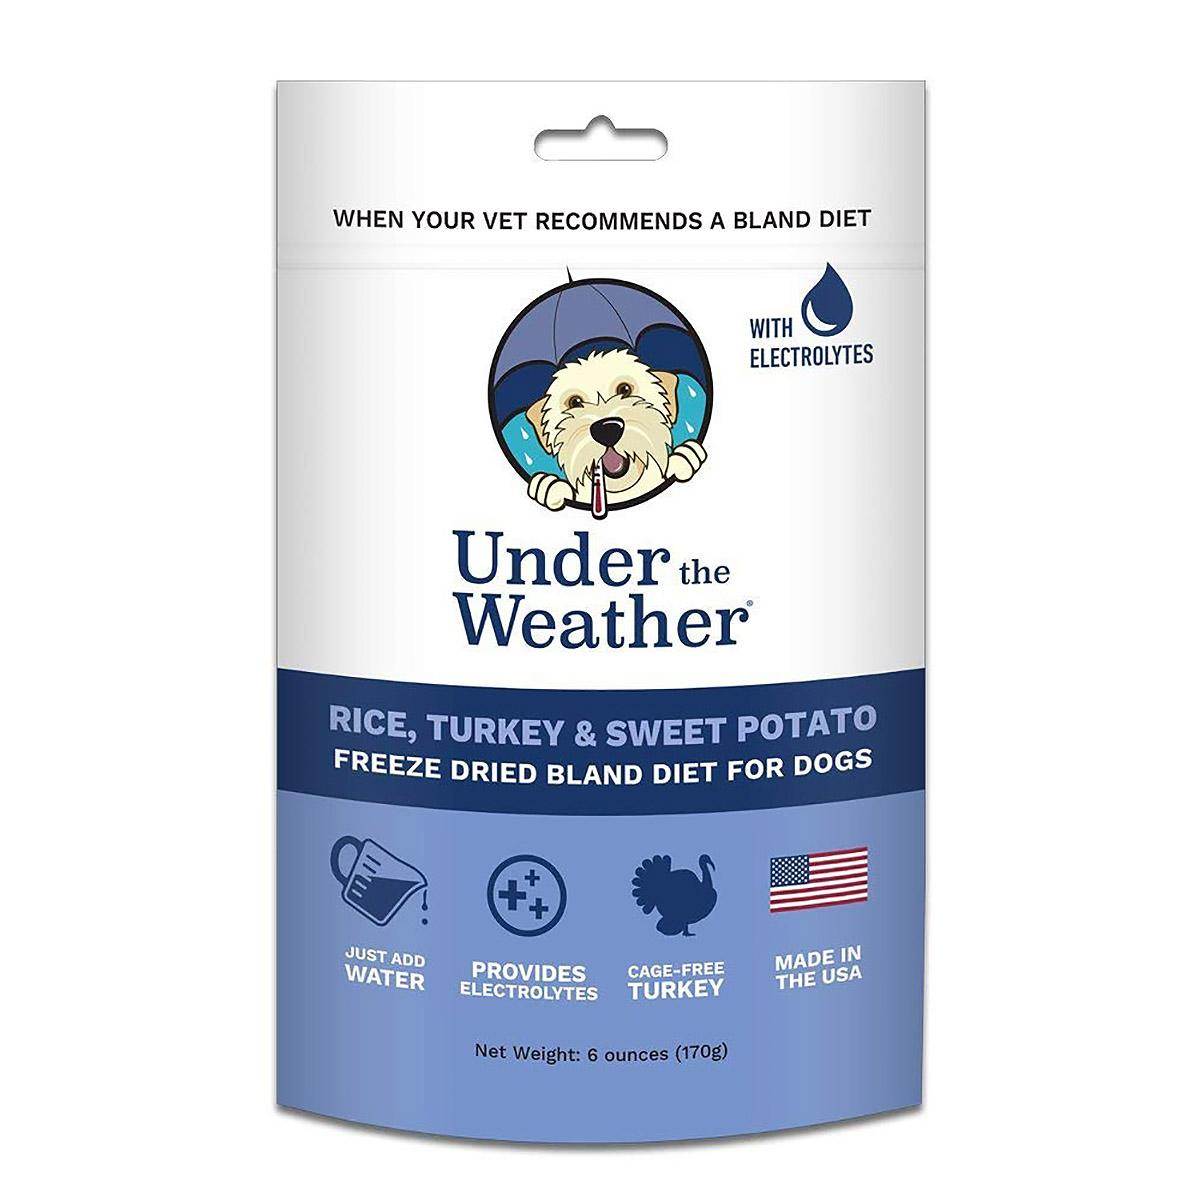 Under the Weather Freeze-Dried Bland Diet for Dogs - Rice, Turkey and Sweet Potato